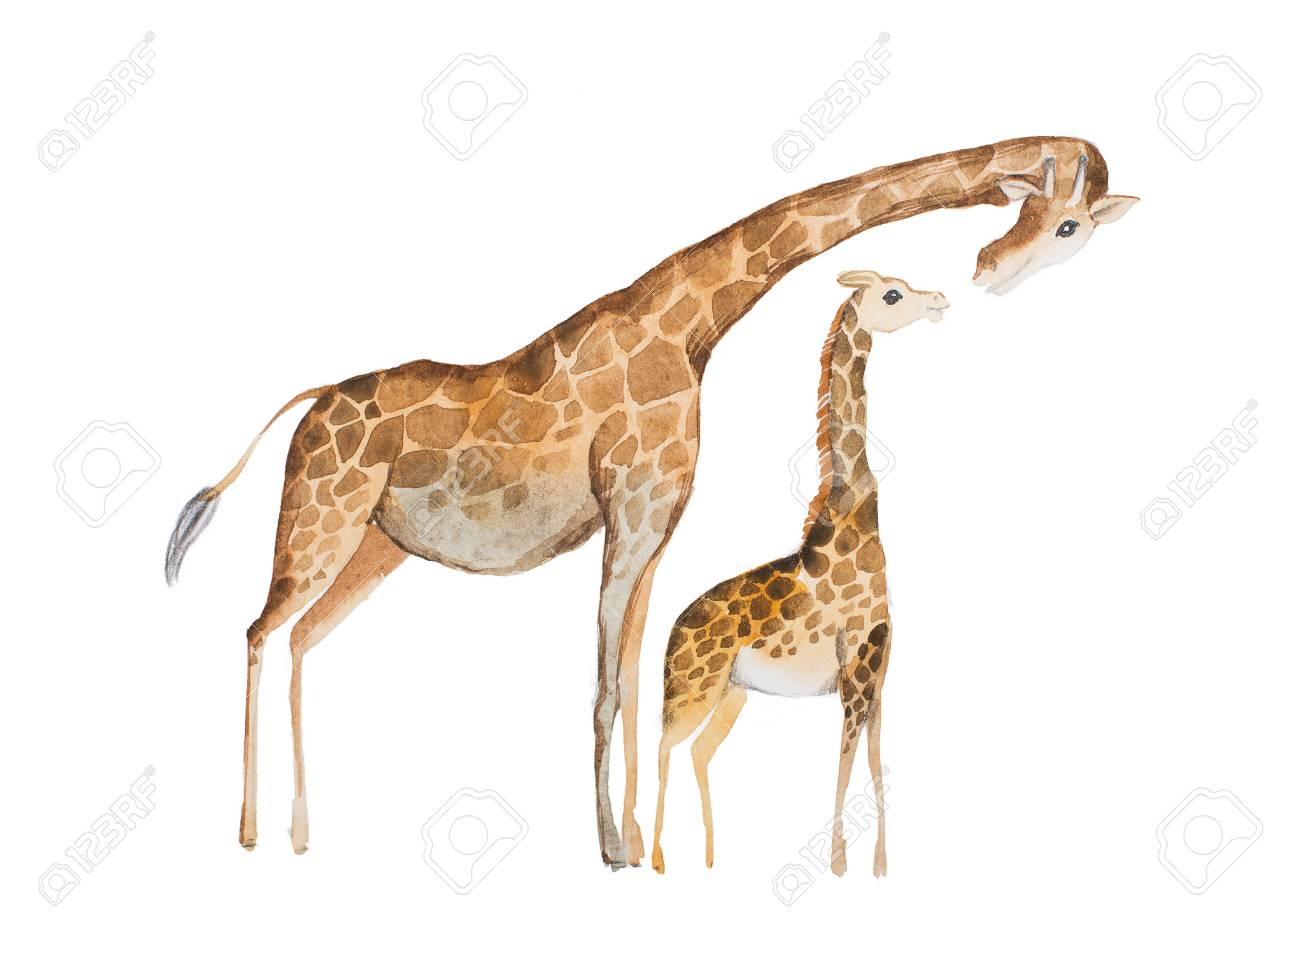 Watercolor illustration of giraffe mother and baby - 80694365